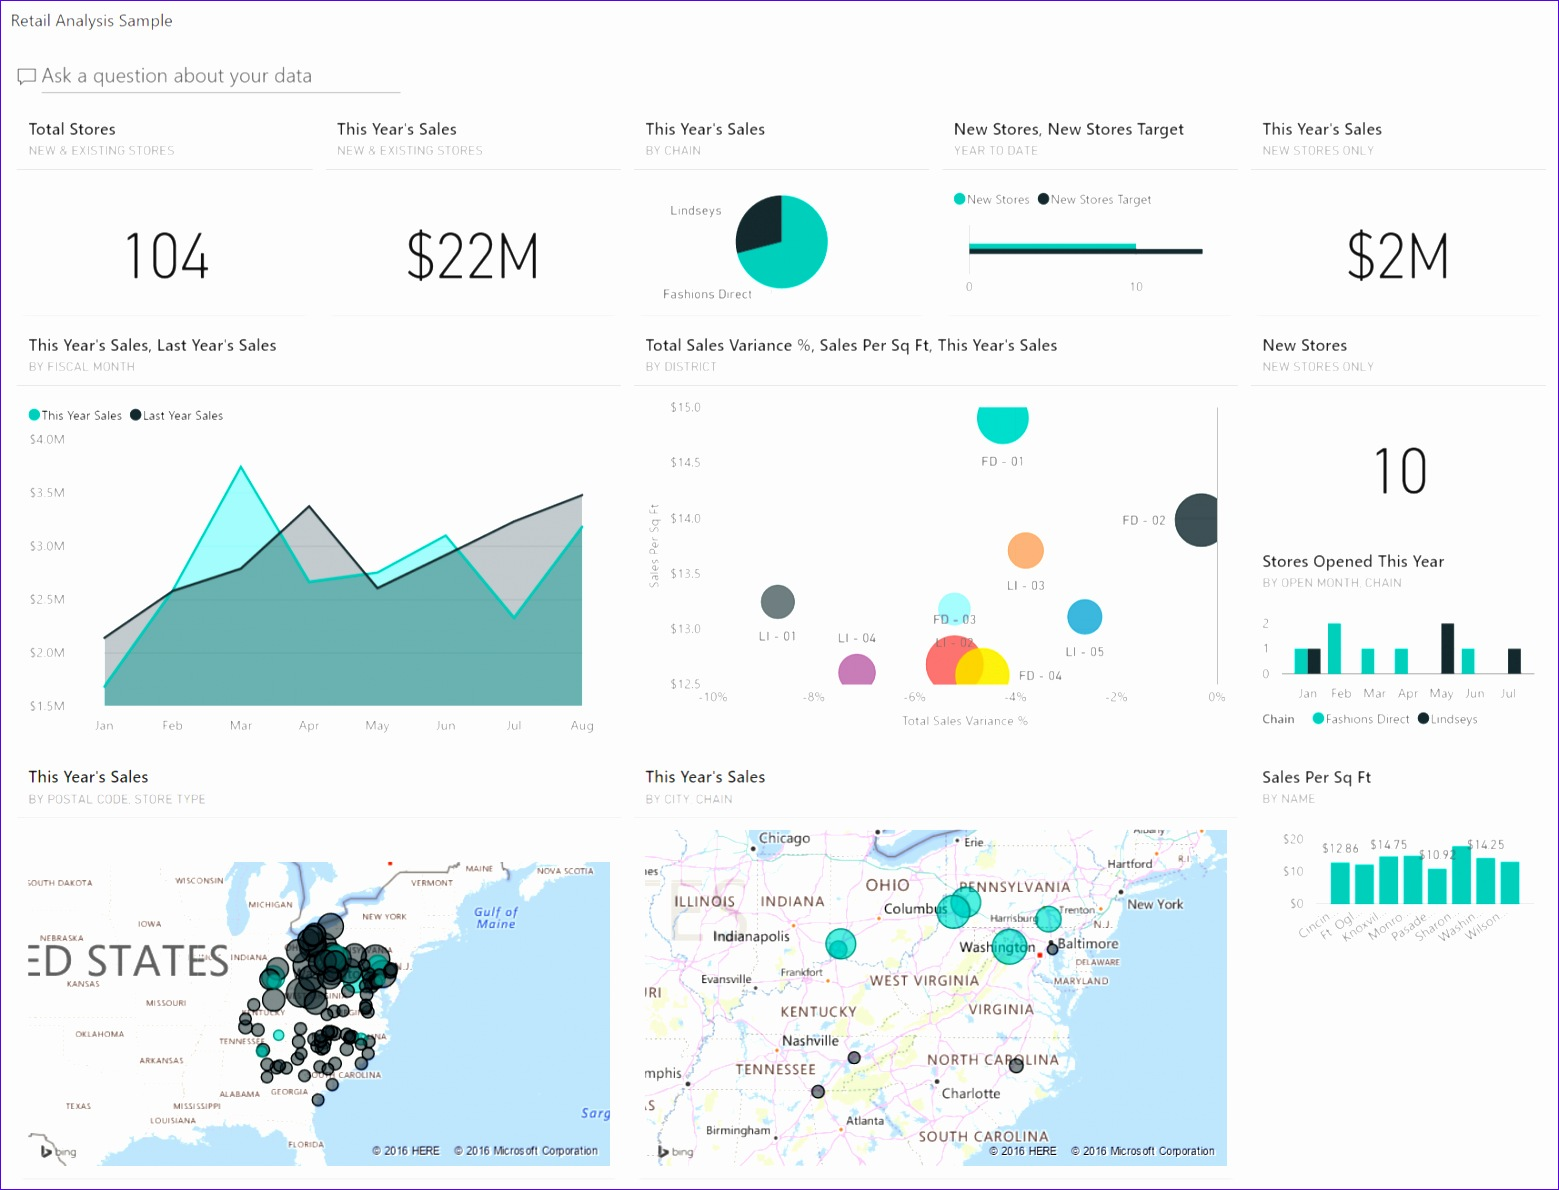 Product order form Template Excel Ccujc Fresh Retail Analysis Sample for Power Bi Take A tour